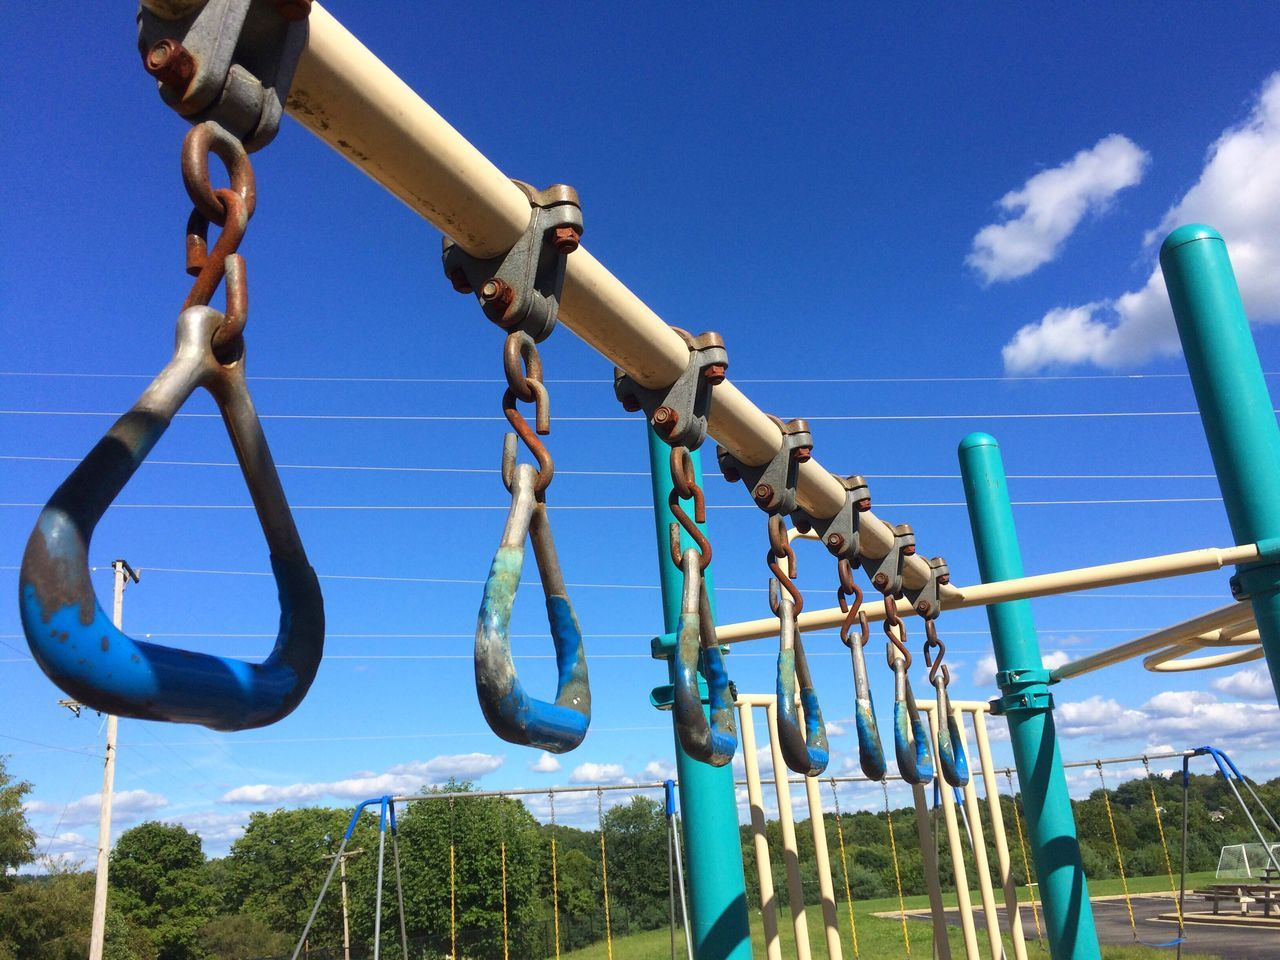 Playground Playground Structure Playgrounds Playground Equipment Fun Kids Toys Yellow Blue Play Ground Play Playground Chains Chain Bars Pipe Shapes Monkey Bars Sky Sky And Clouds Clouds Clouds And Sky Metal